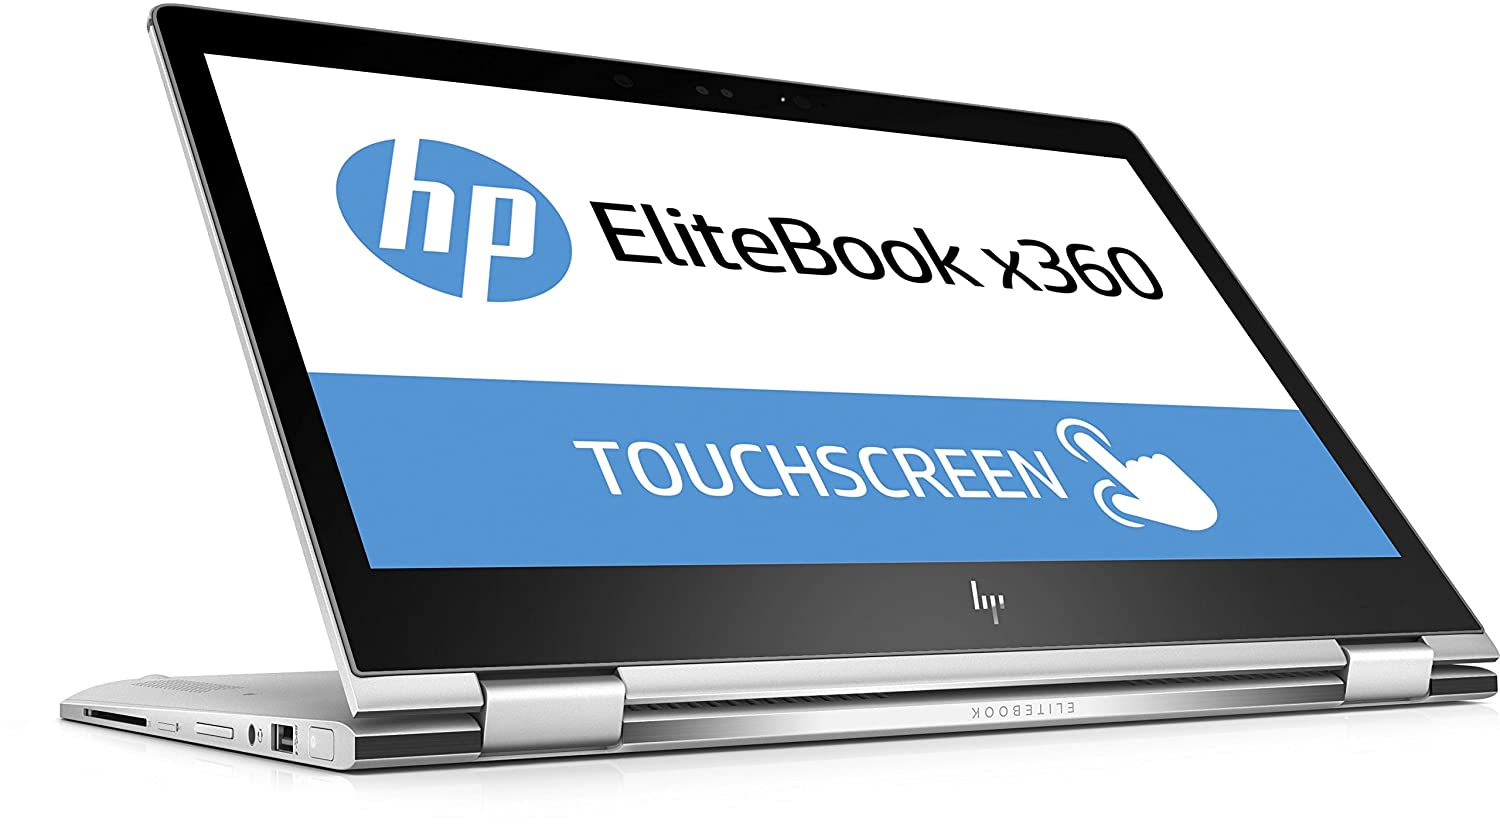 Ordenador portátil HP EliteBook x360 1030 G2 (13,3 Pulgadas FHD Pantalla táctil), Intel Core i7-7600U, 256 GB SSD, 8 GB de RAM, Windows 10 Pro, Color Plata: ...